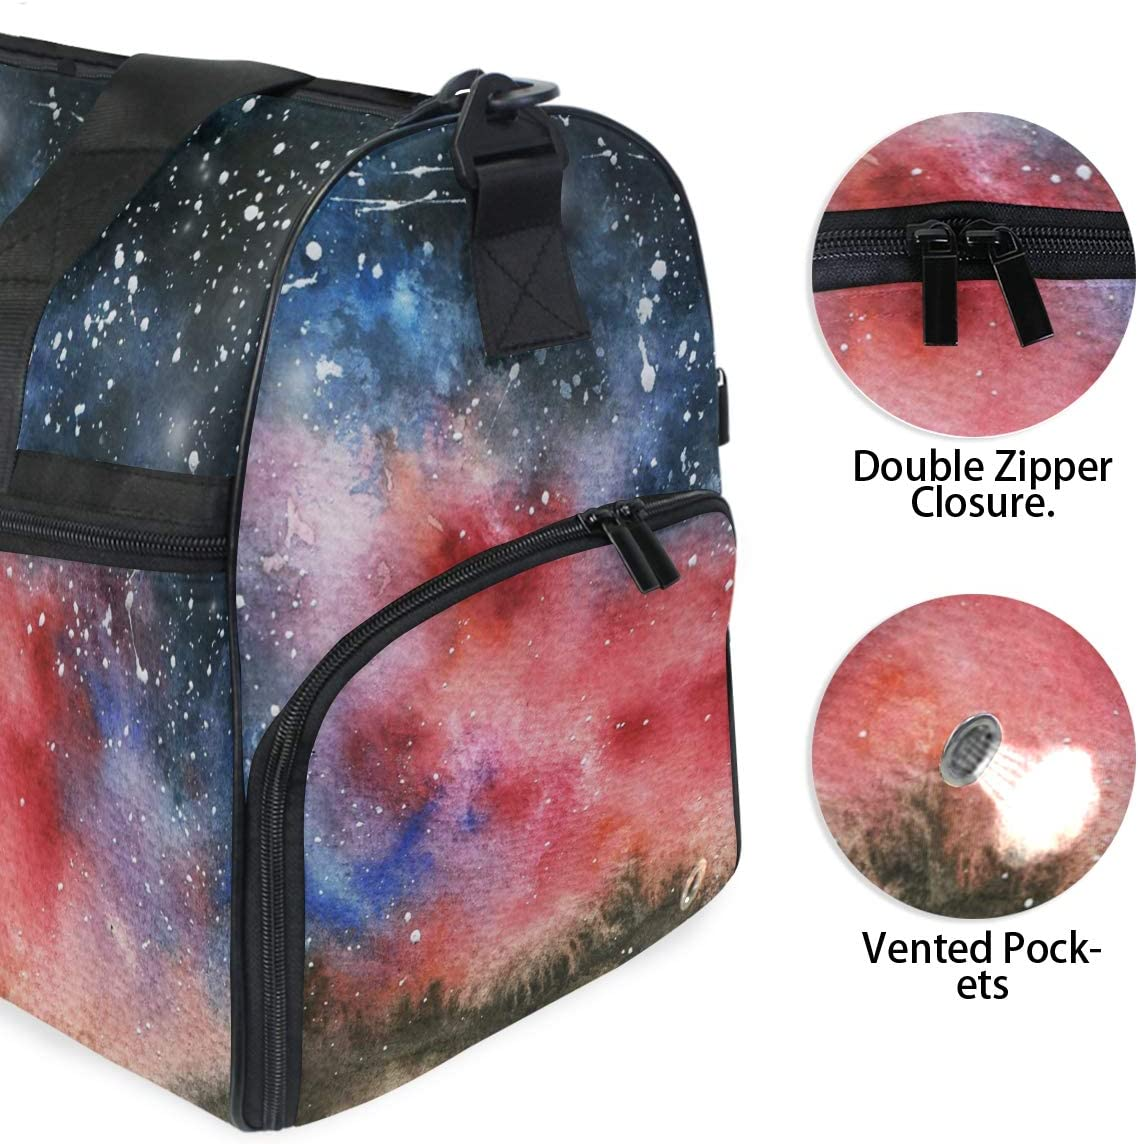 FAJRO Gym Bag Travel Duffel Express Weekender Bag Aurora Starry Sky Carry On Luggage with Shoe Pouch